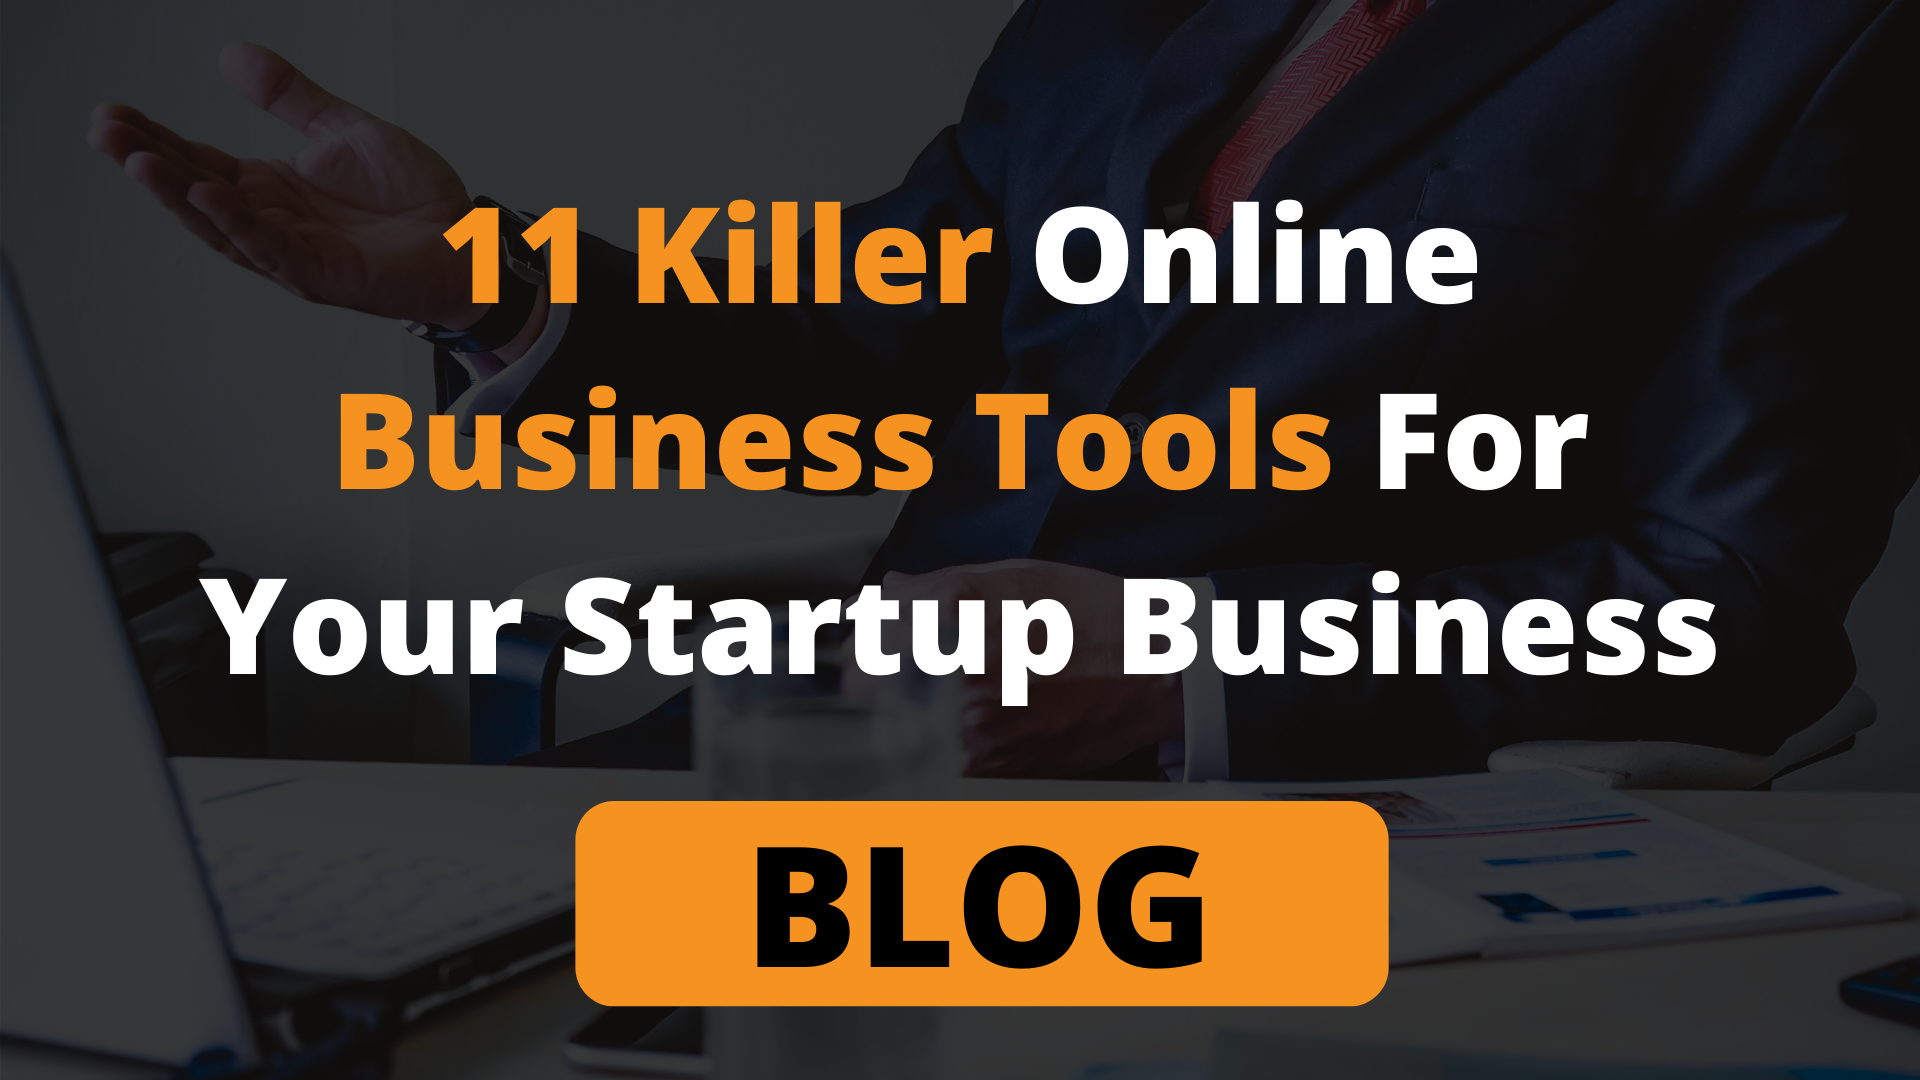 11 Killer Online Business Tools For Your Startup Business